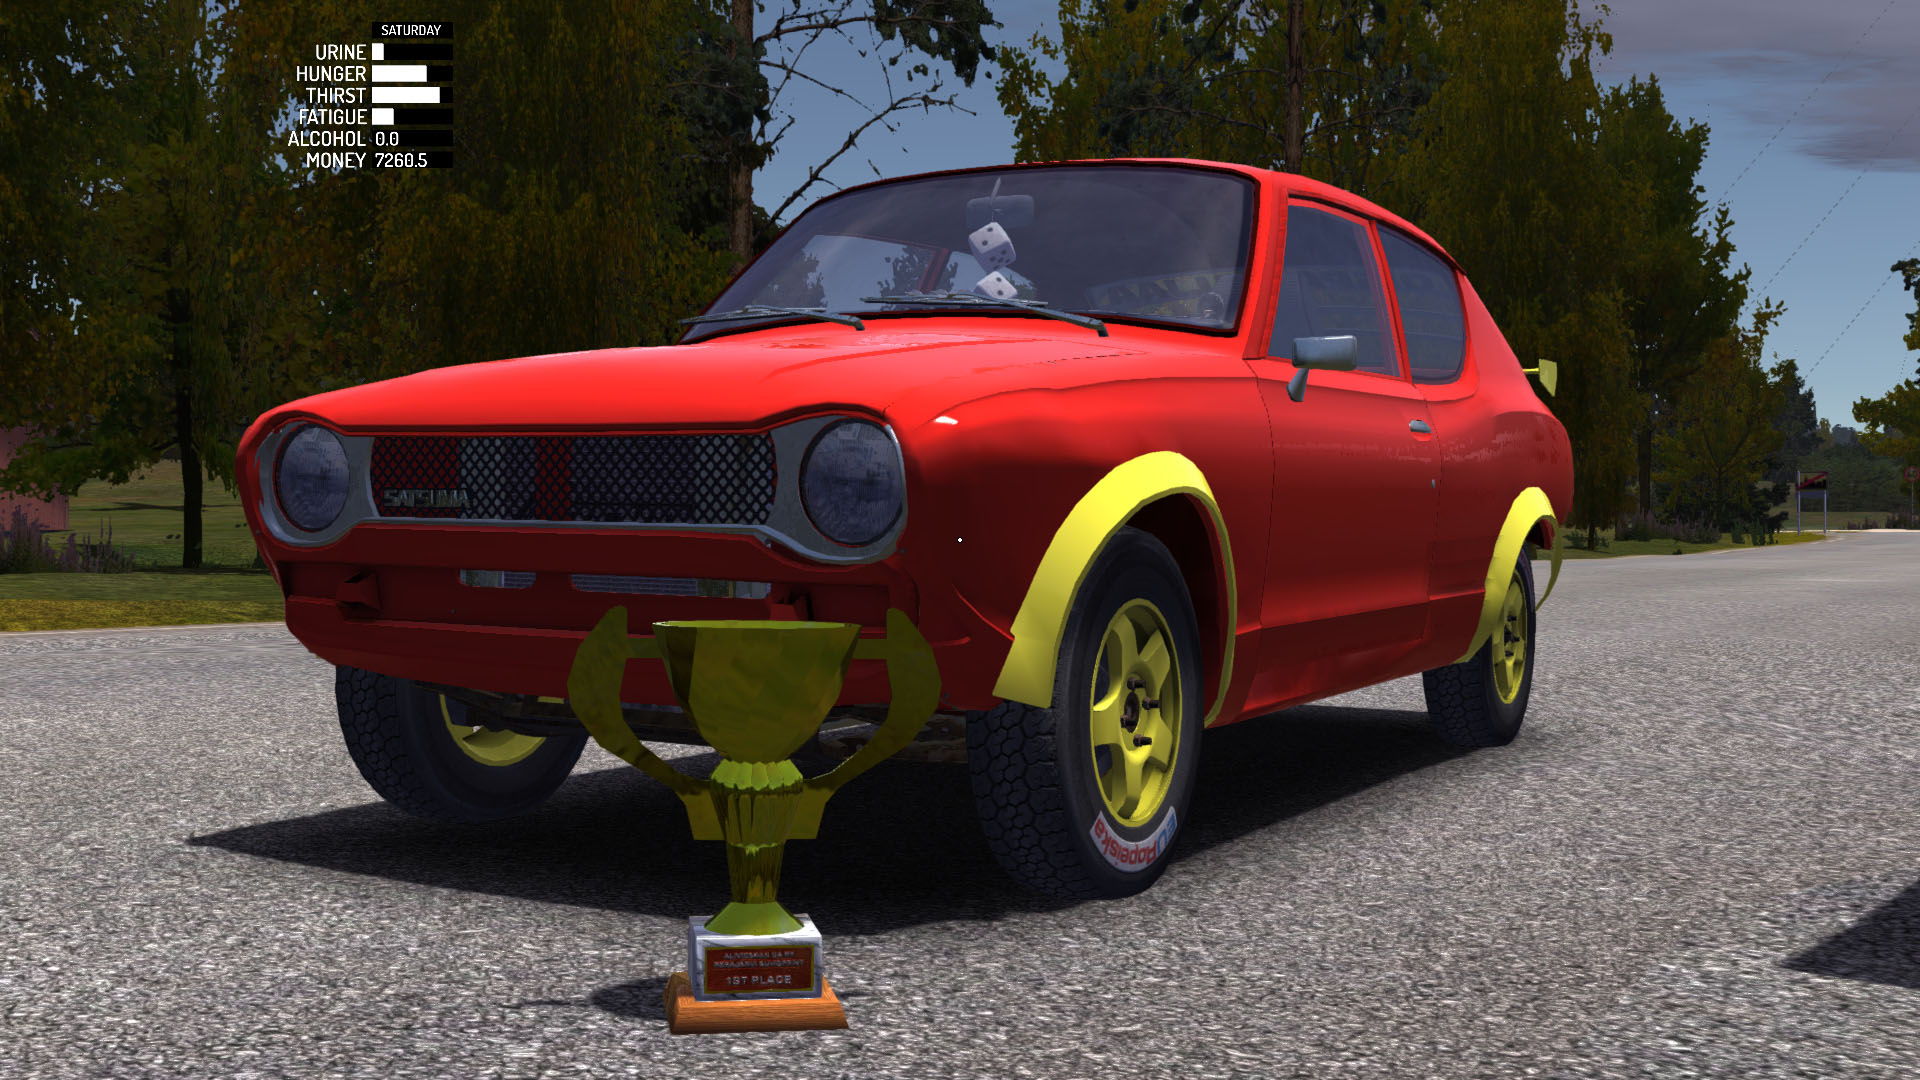 My Summer Car: A Simulation in Success | My Summer Car